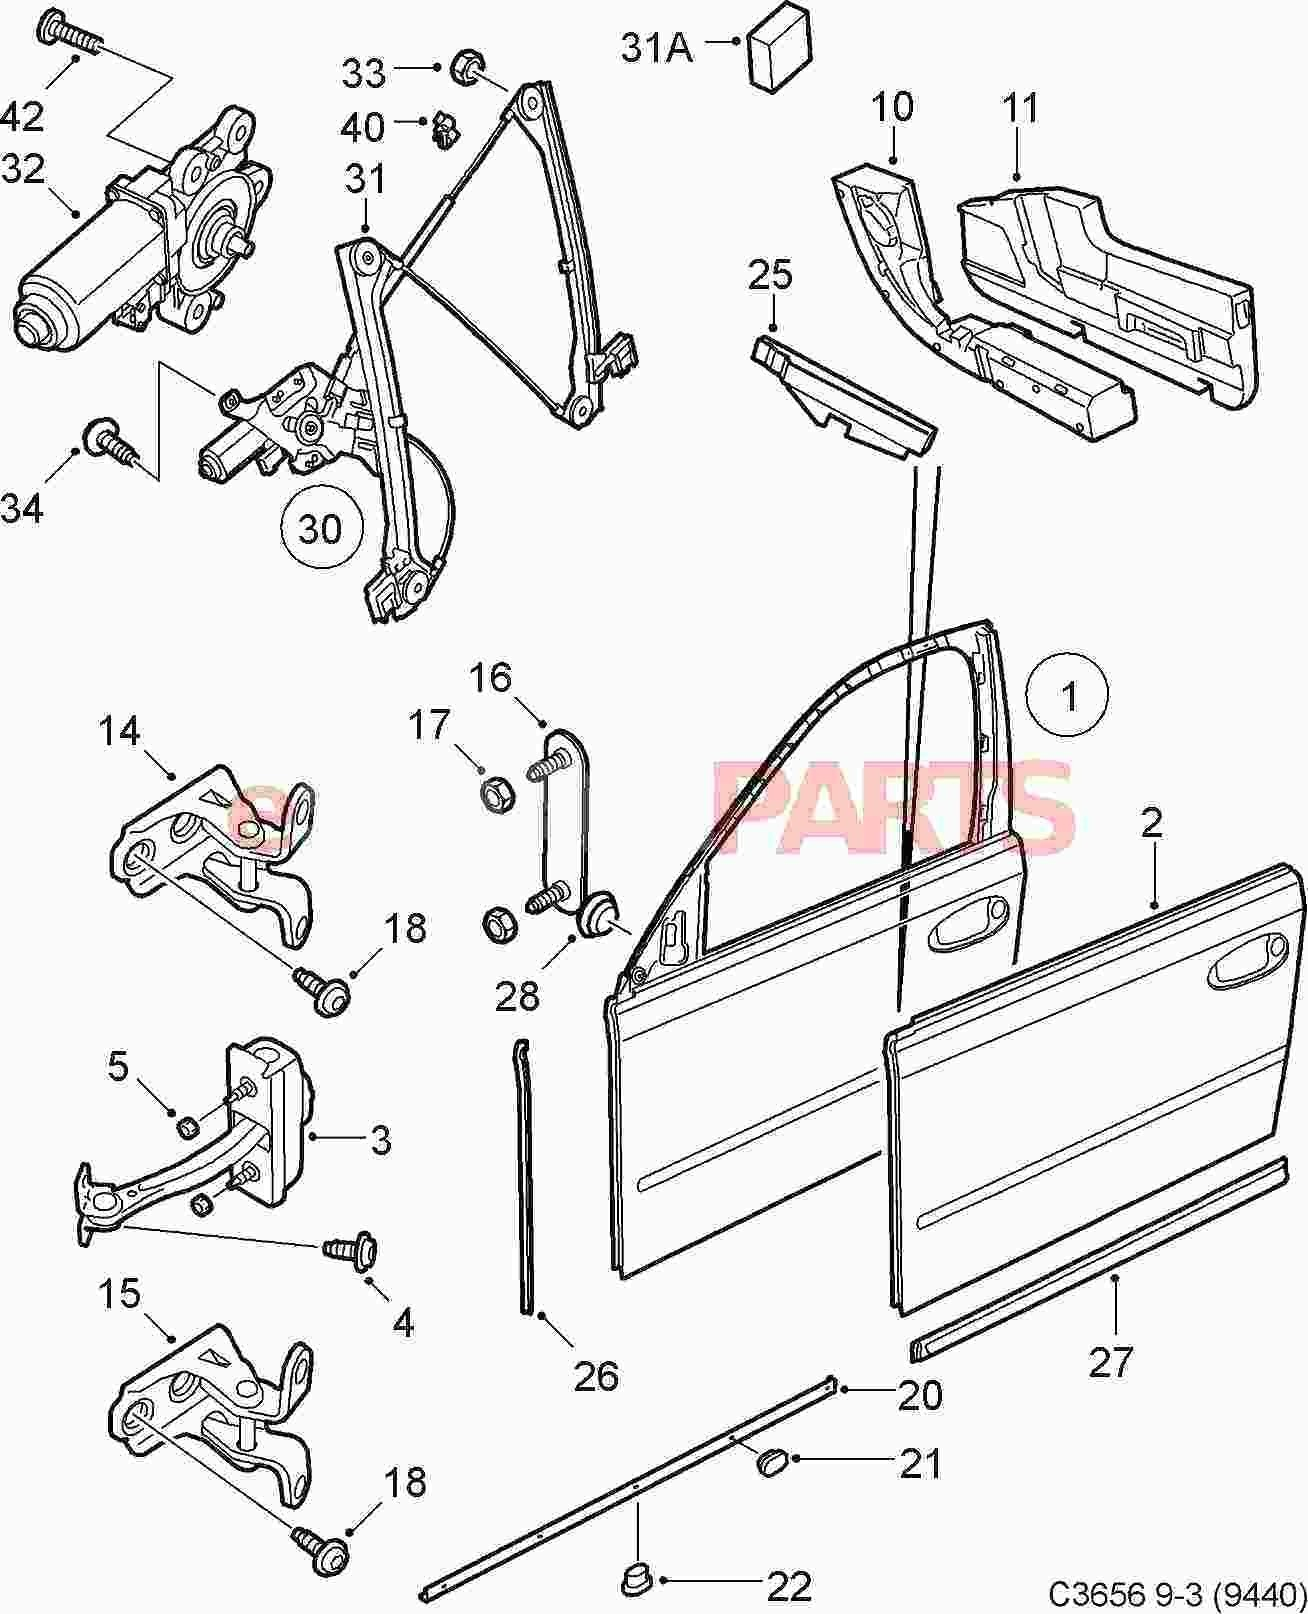 Car undercarriage parts diagram my wiring diagram